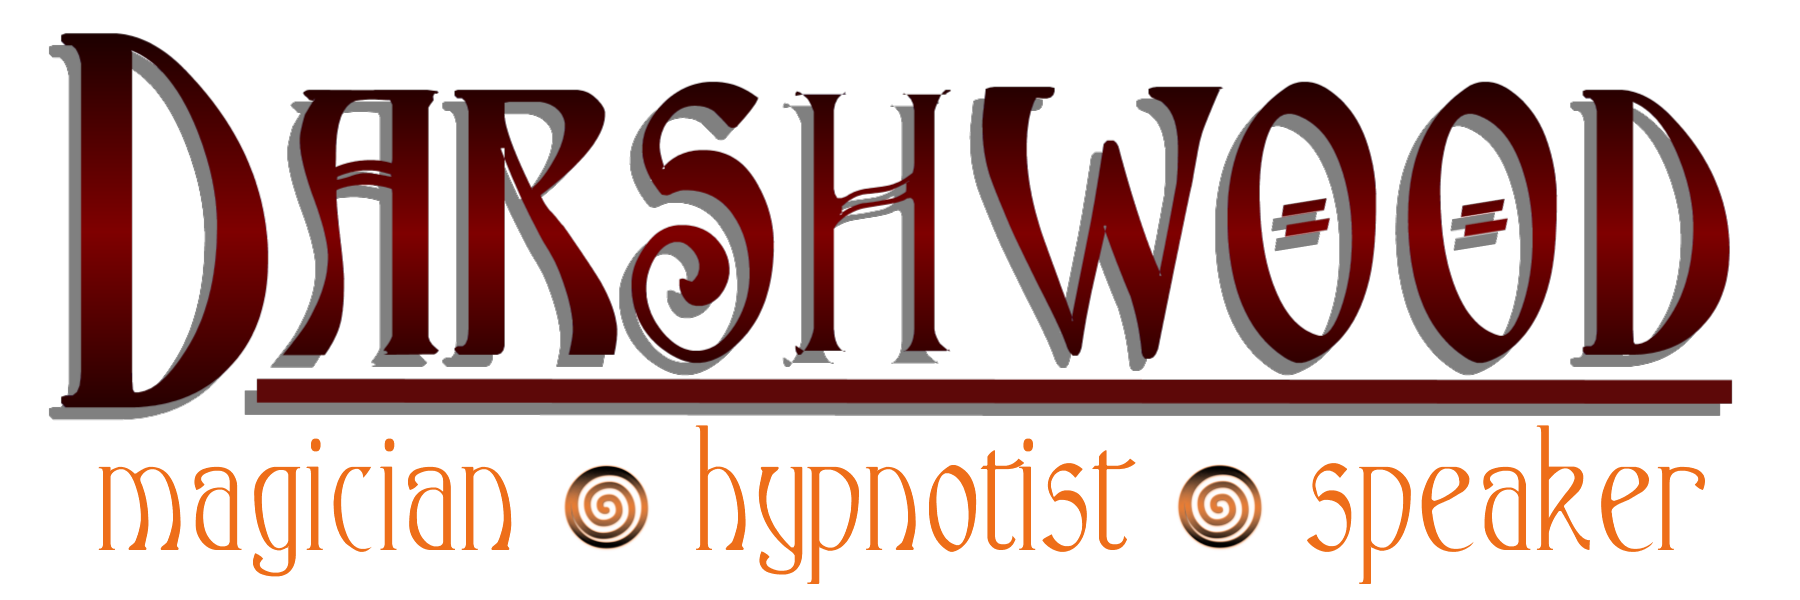 Darshwood Logo